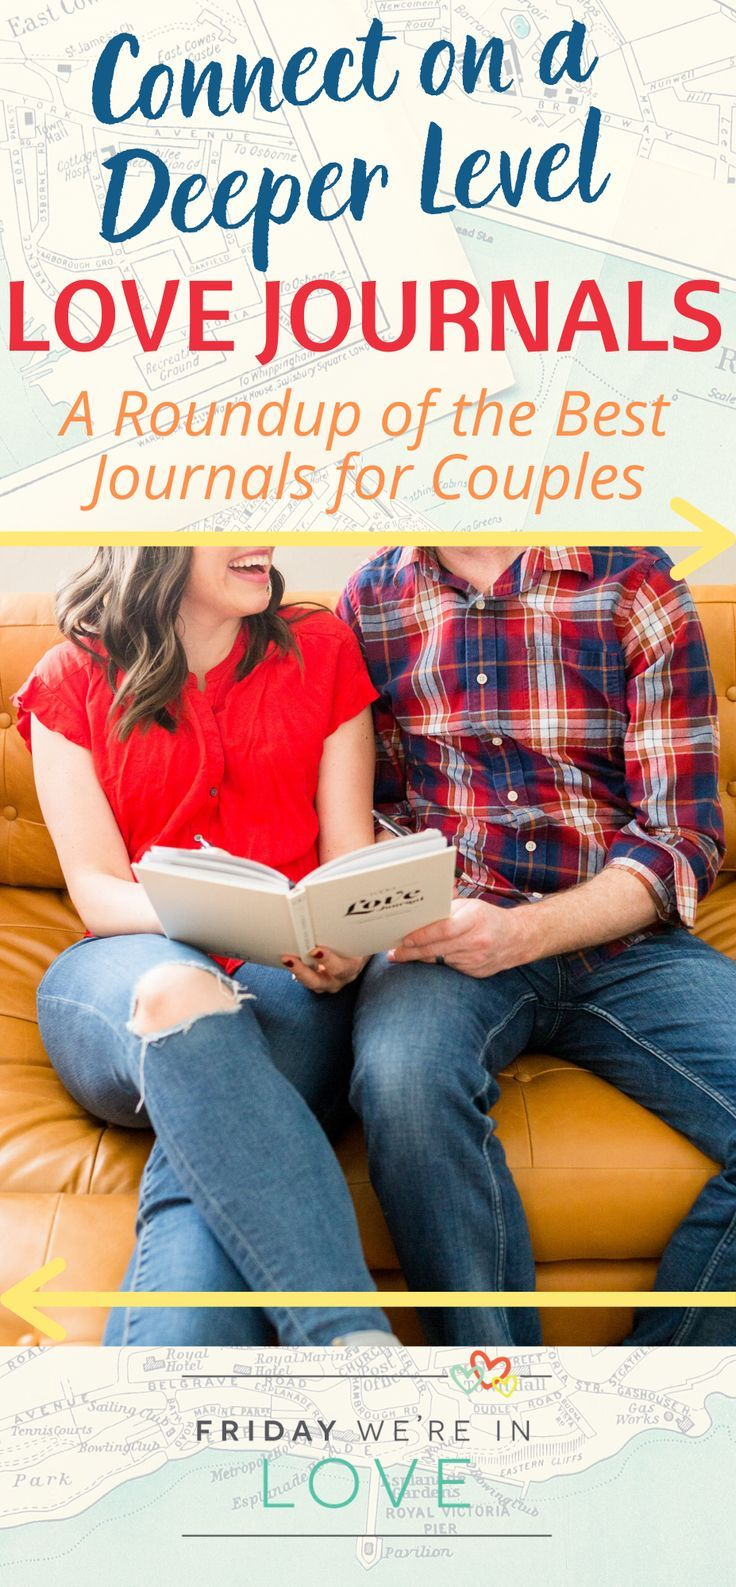 Pin on Couples' Stuff: Love, Lifestyle, + More